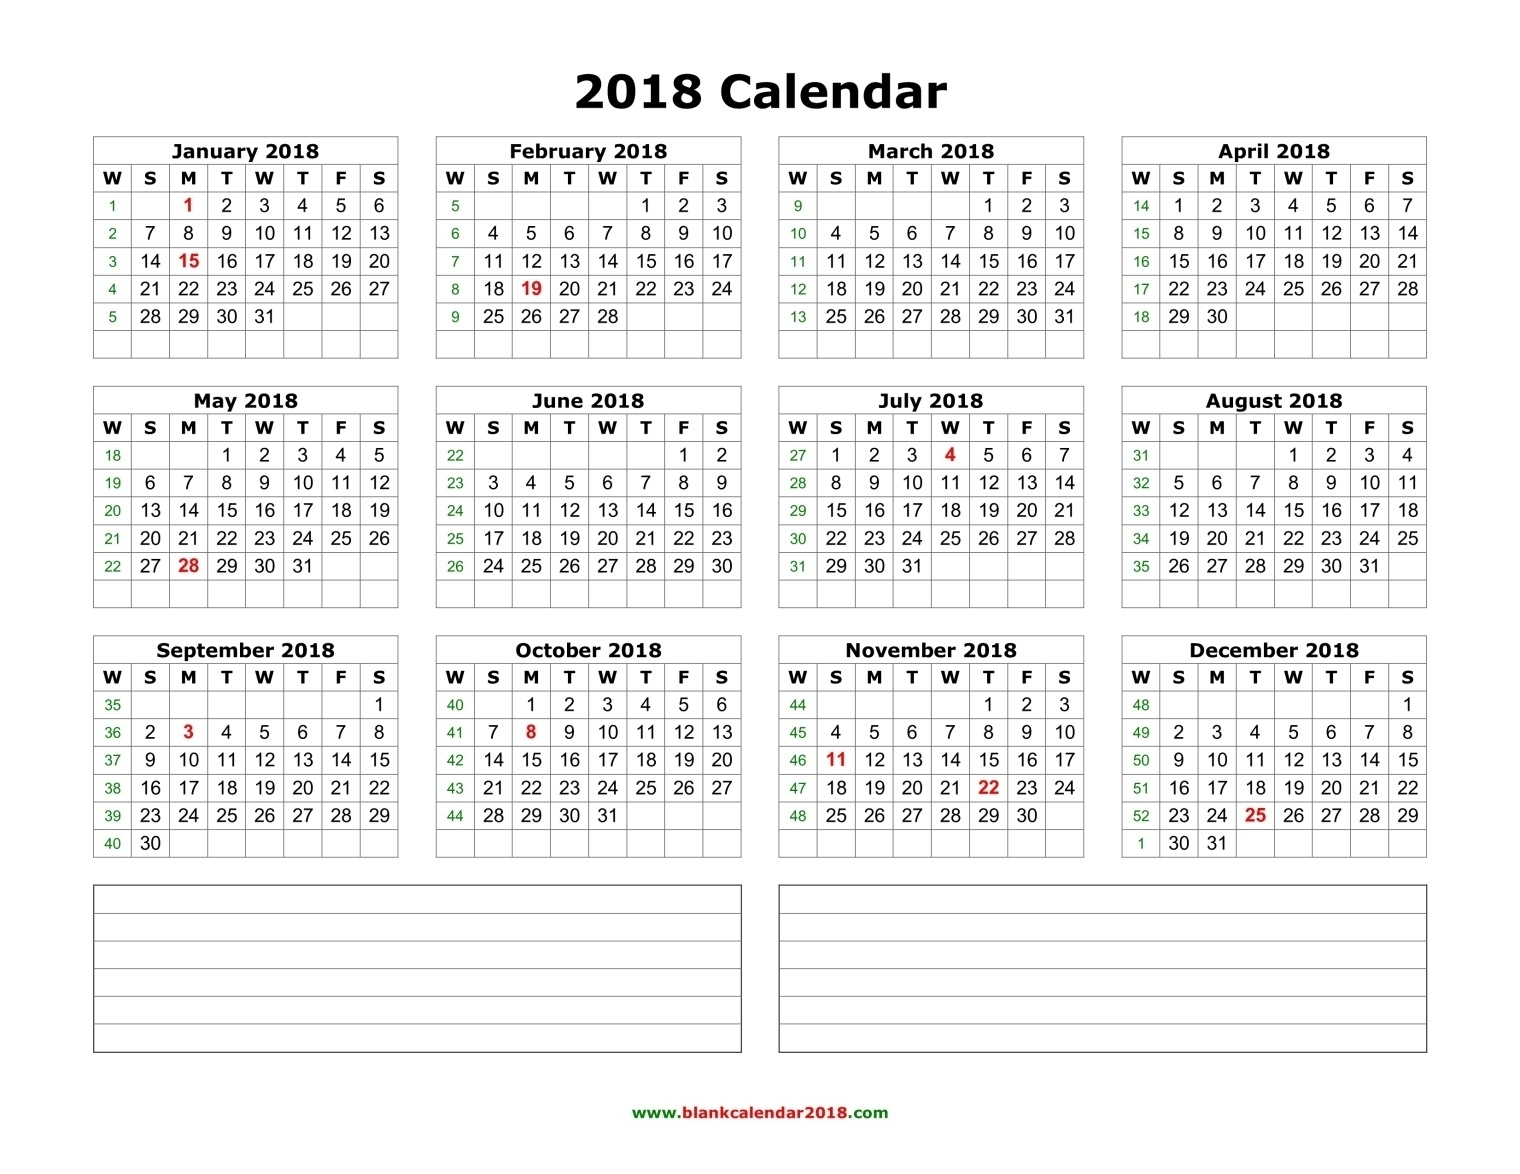 Blank Calendar 2018  12 Month Calendar With Room For Notes